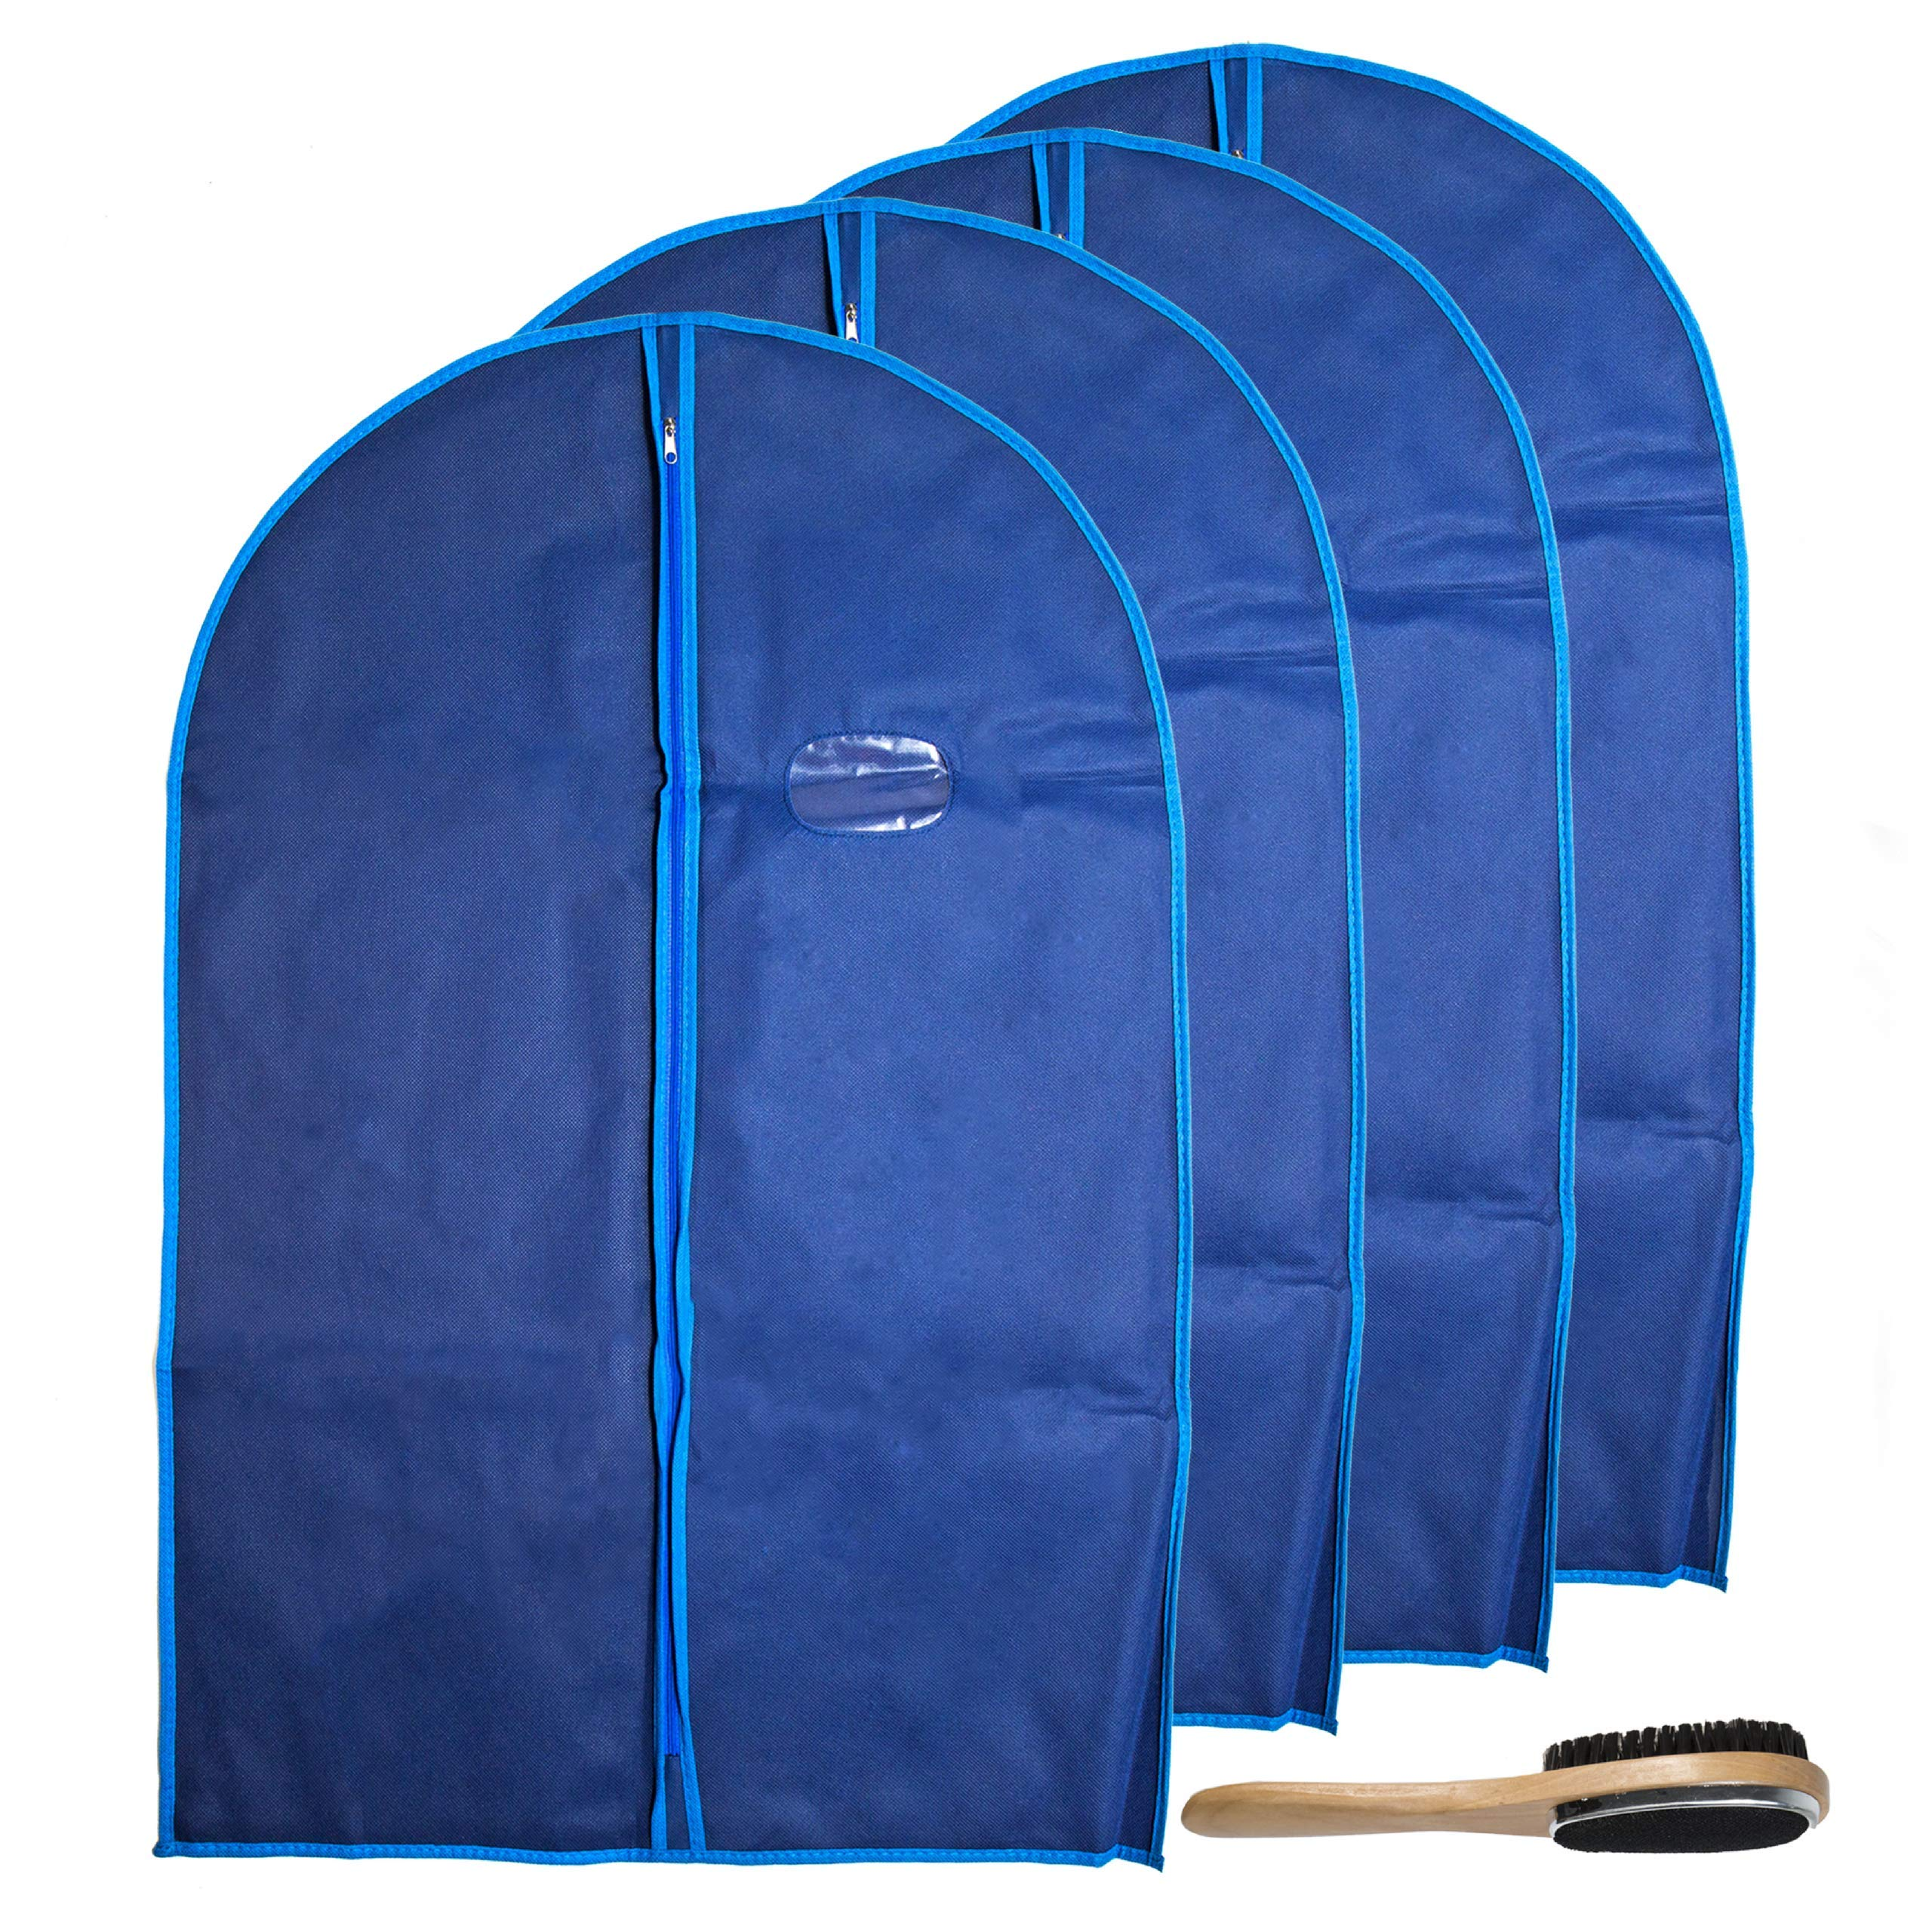 Garment Bags by Home Zone - 4 Pack of Breathable Garment Suit Bag Clothes Covers - Protect Garments & Suits - Ideal for Mens Travel & Clothing Protection - Navy & Blue Finish - Medium Size